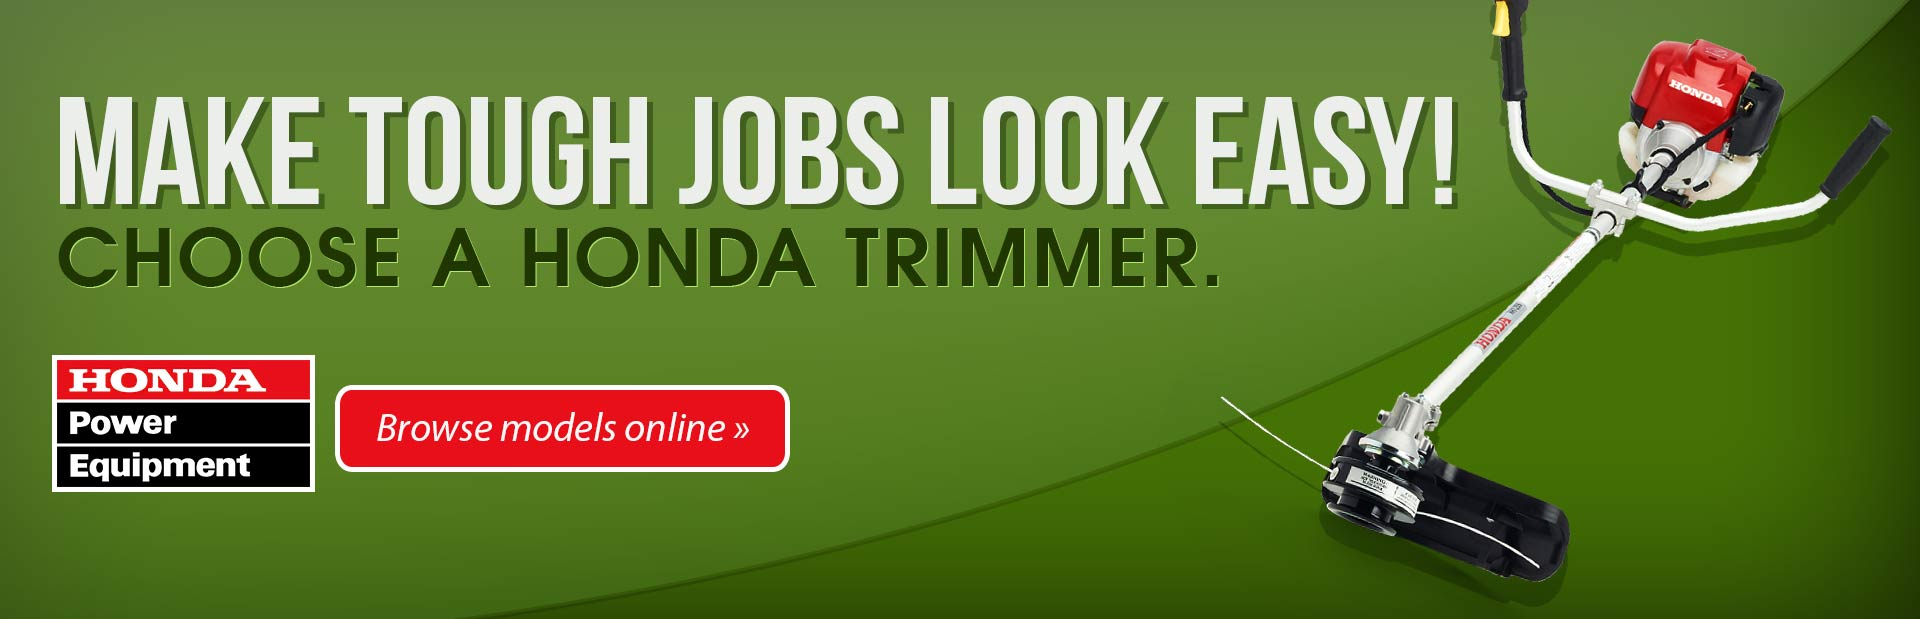 Make tough jobs look easy! Choose a Honda trimmer. Click here to browse models online.